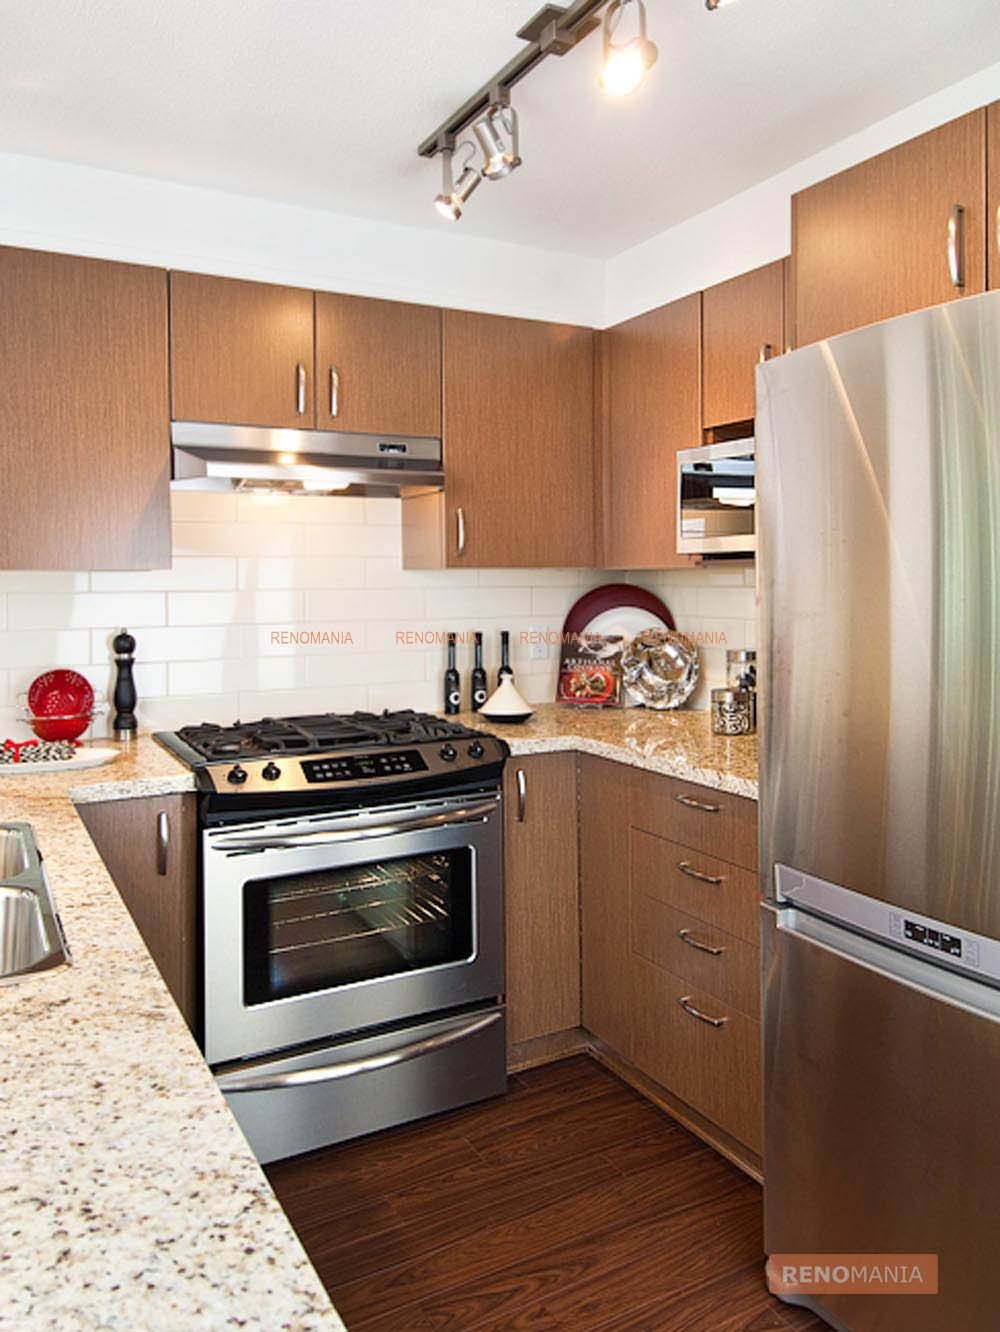 your kitchen is tiny so what kitchen small kitchen apartment kitchen on kitchen cabinets vertical lines id=67416